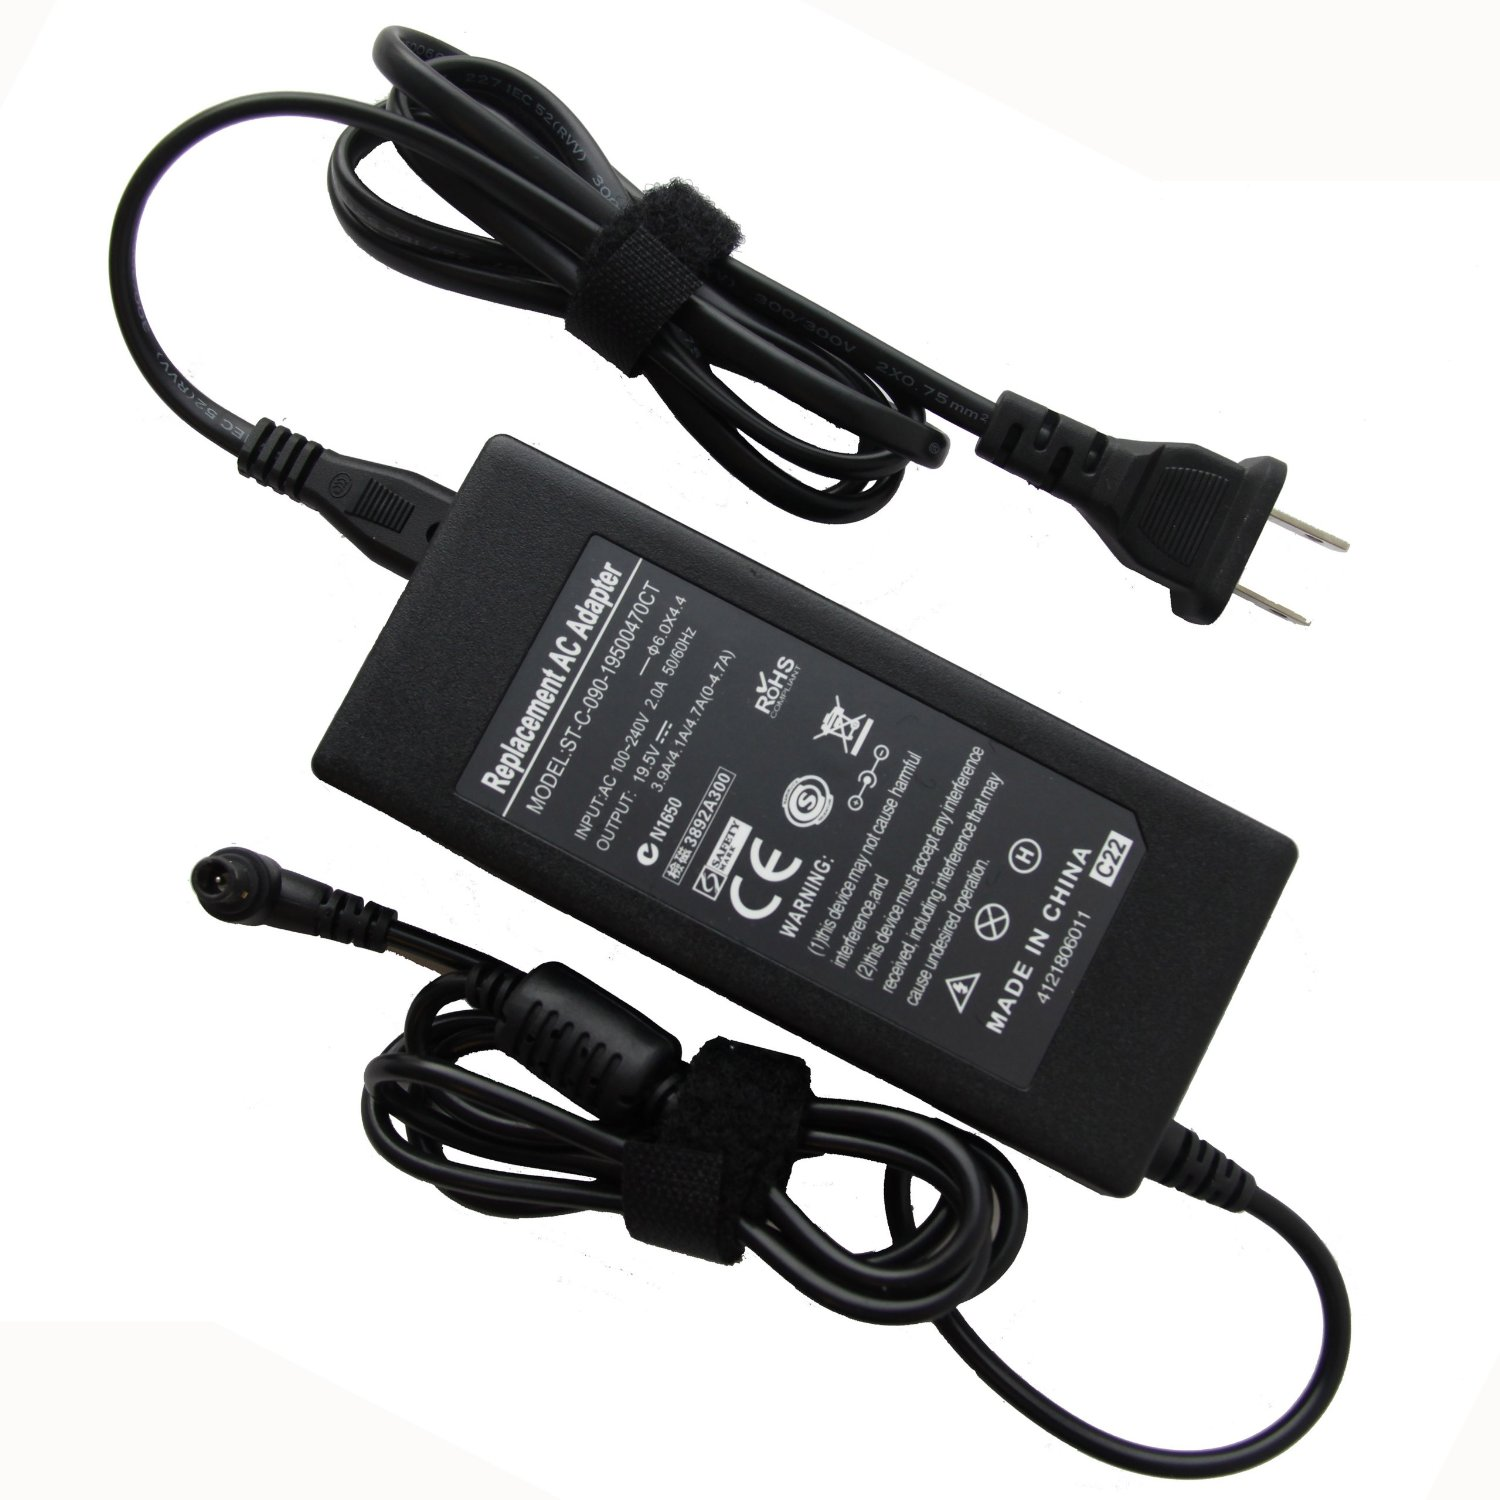 Input 110 240V 50 60HZ 24W 12V 2A AC DC Laptop power adapter